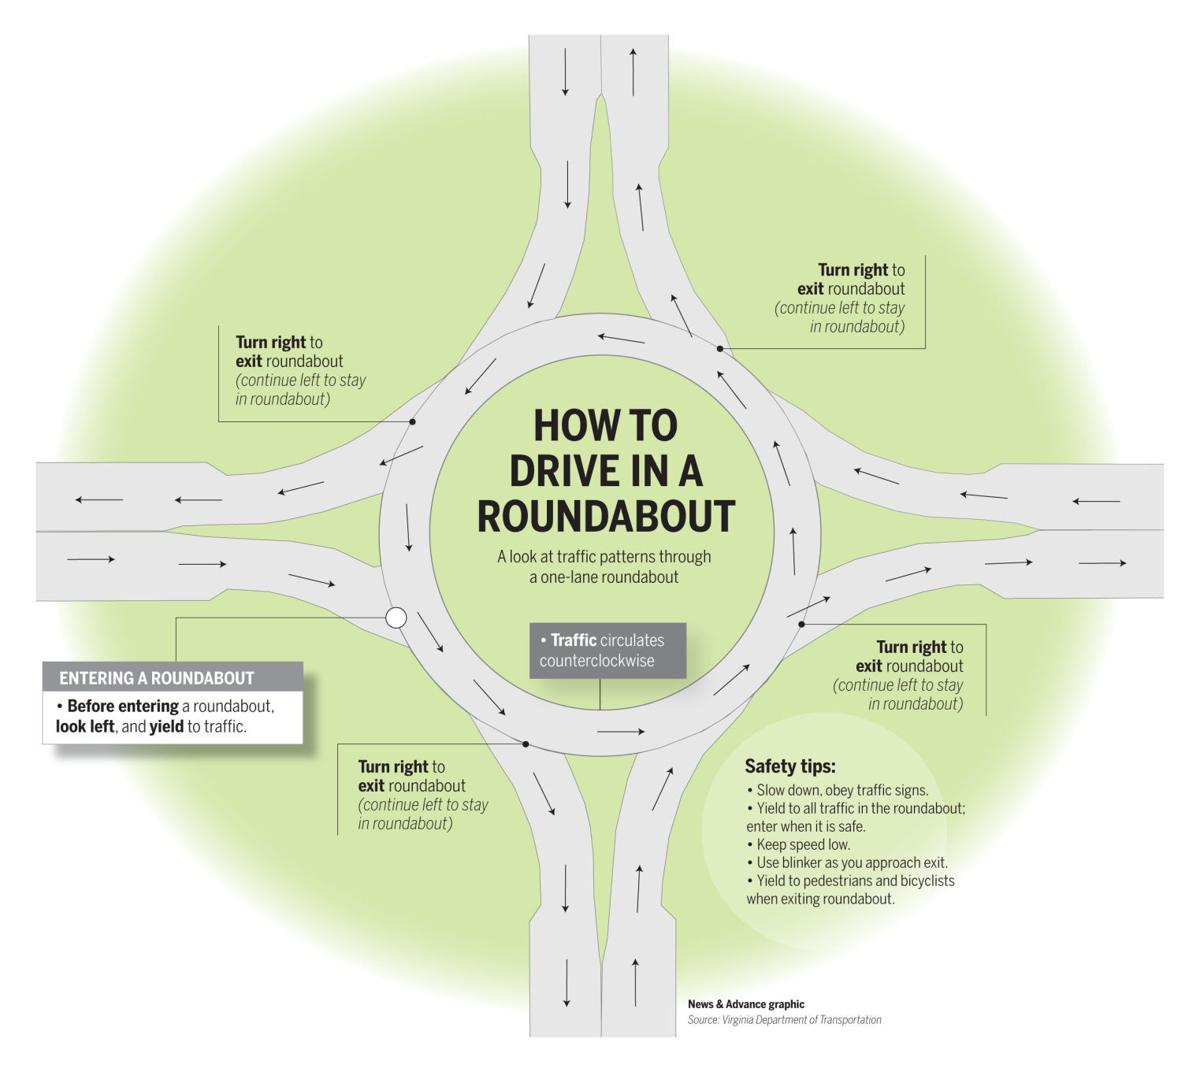 Roundabout guide